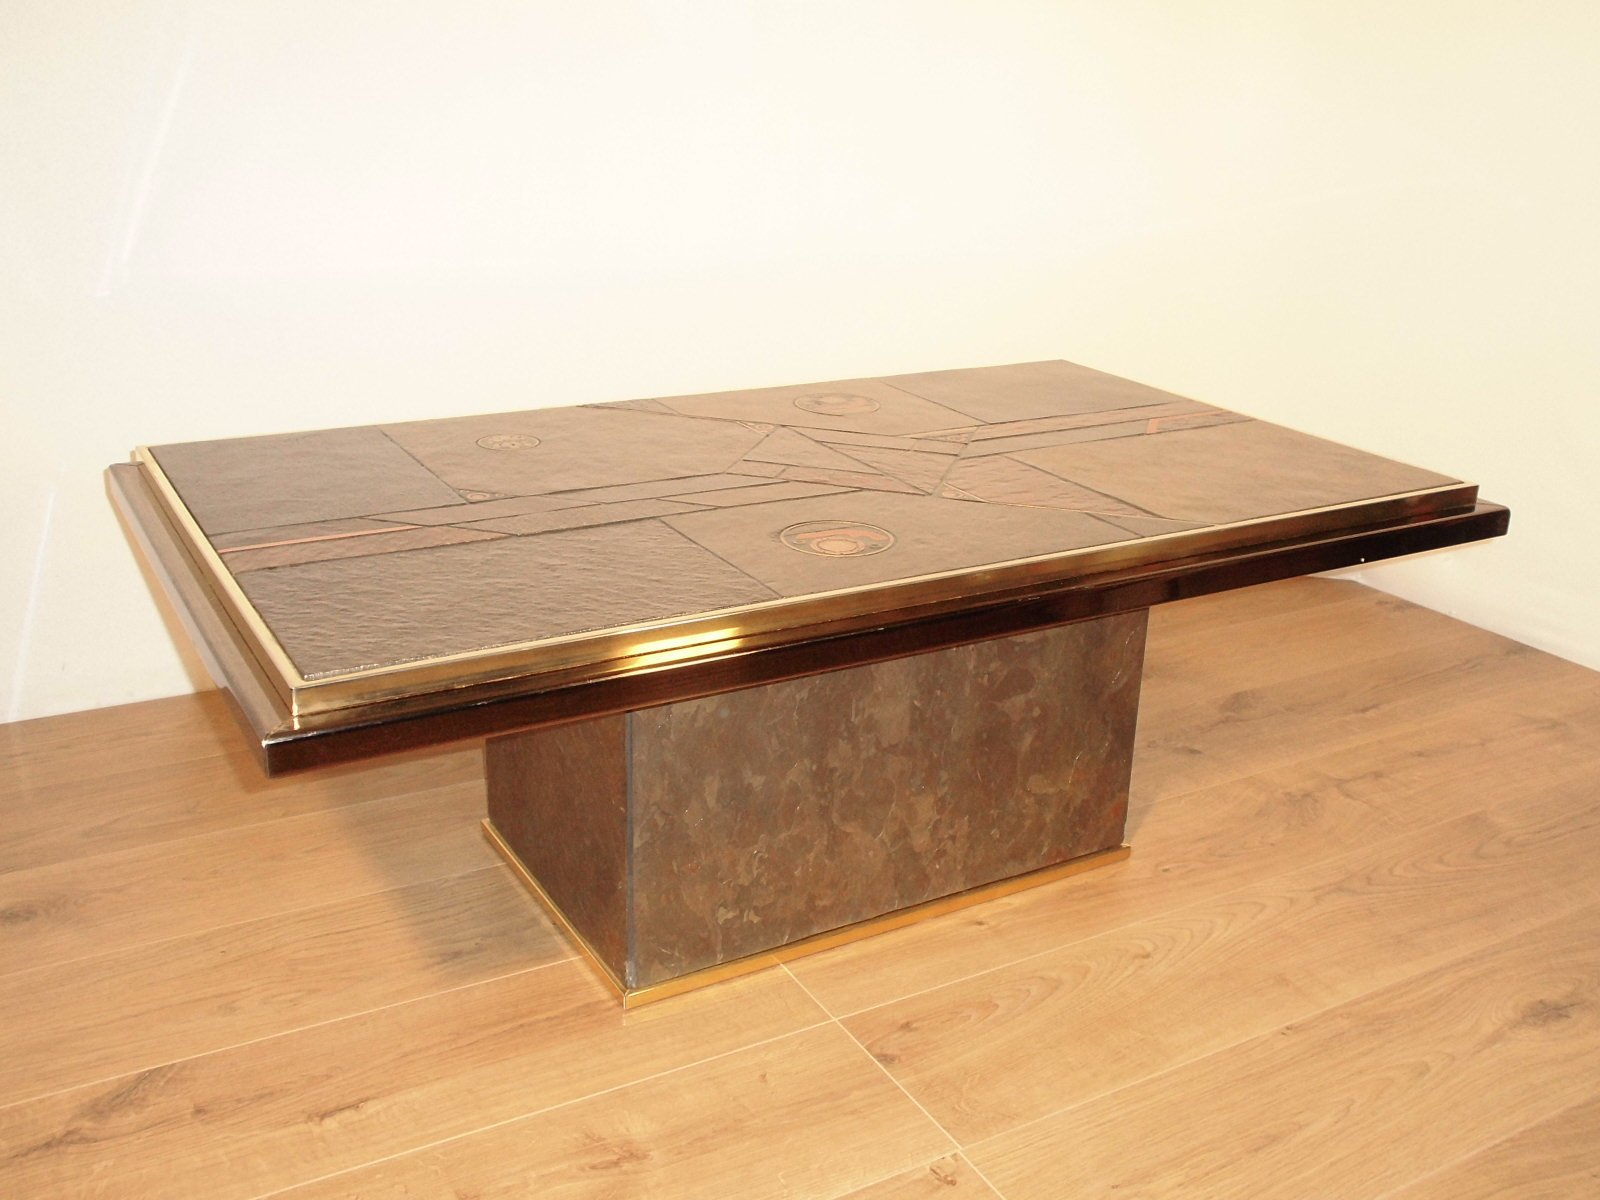 Stone and bronze coffee table by paul kingma 1970 for sale at pamono Bronze coffee tables